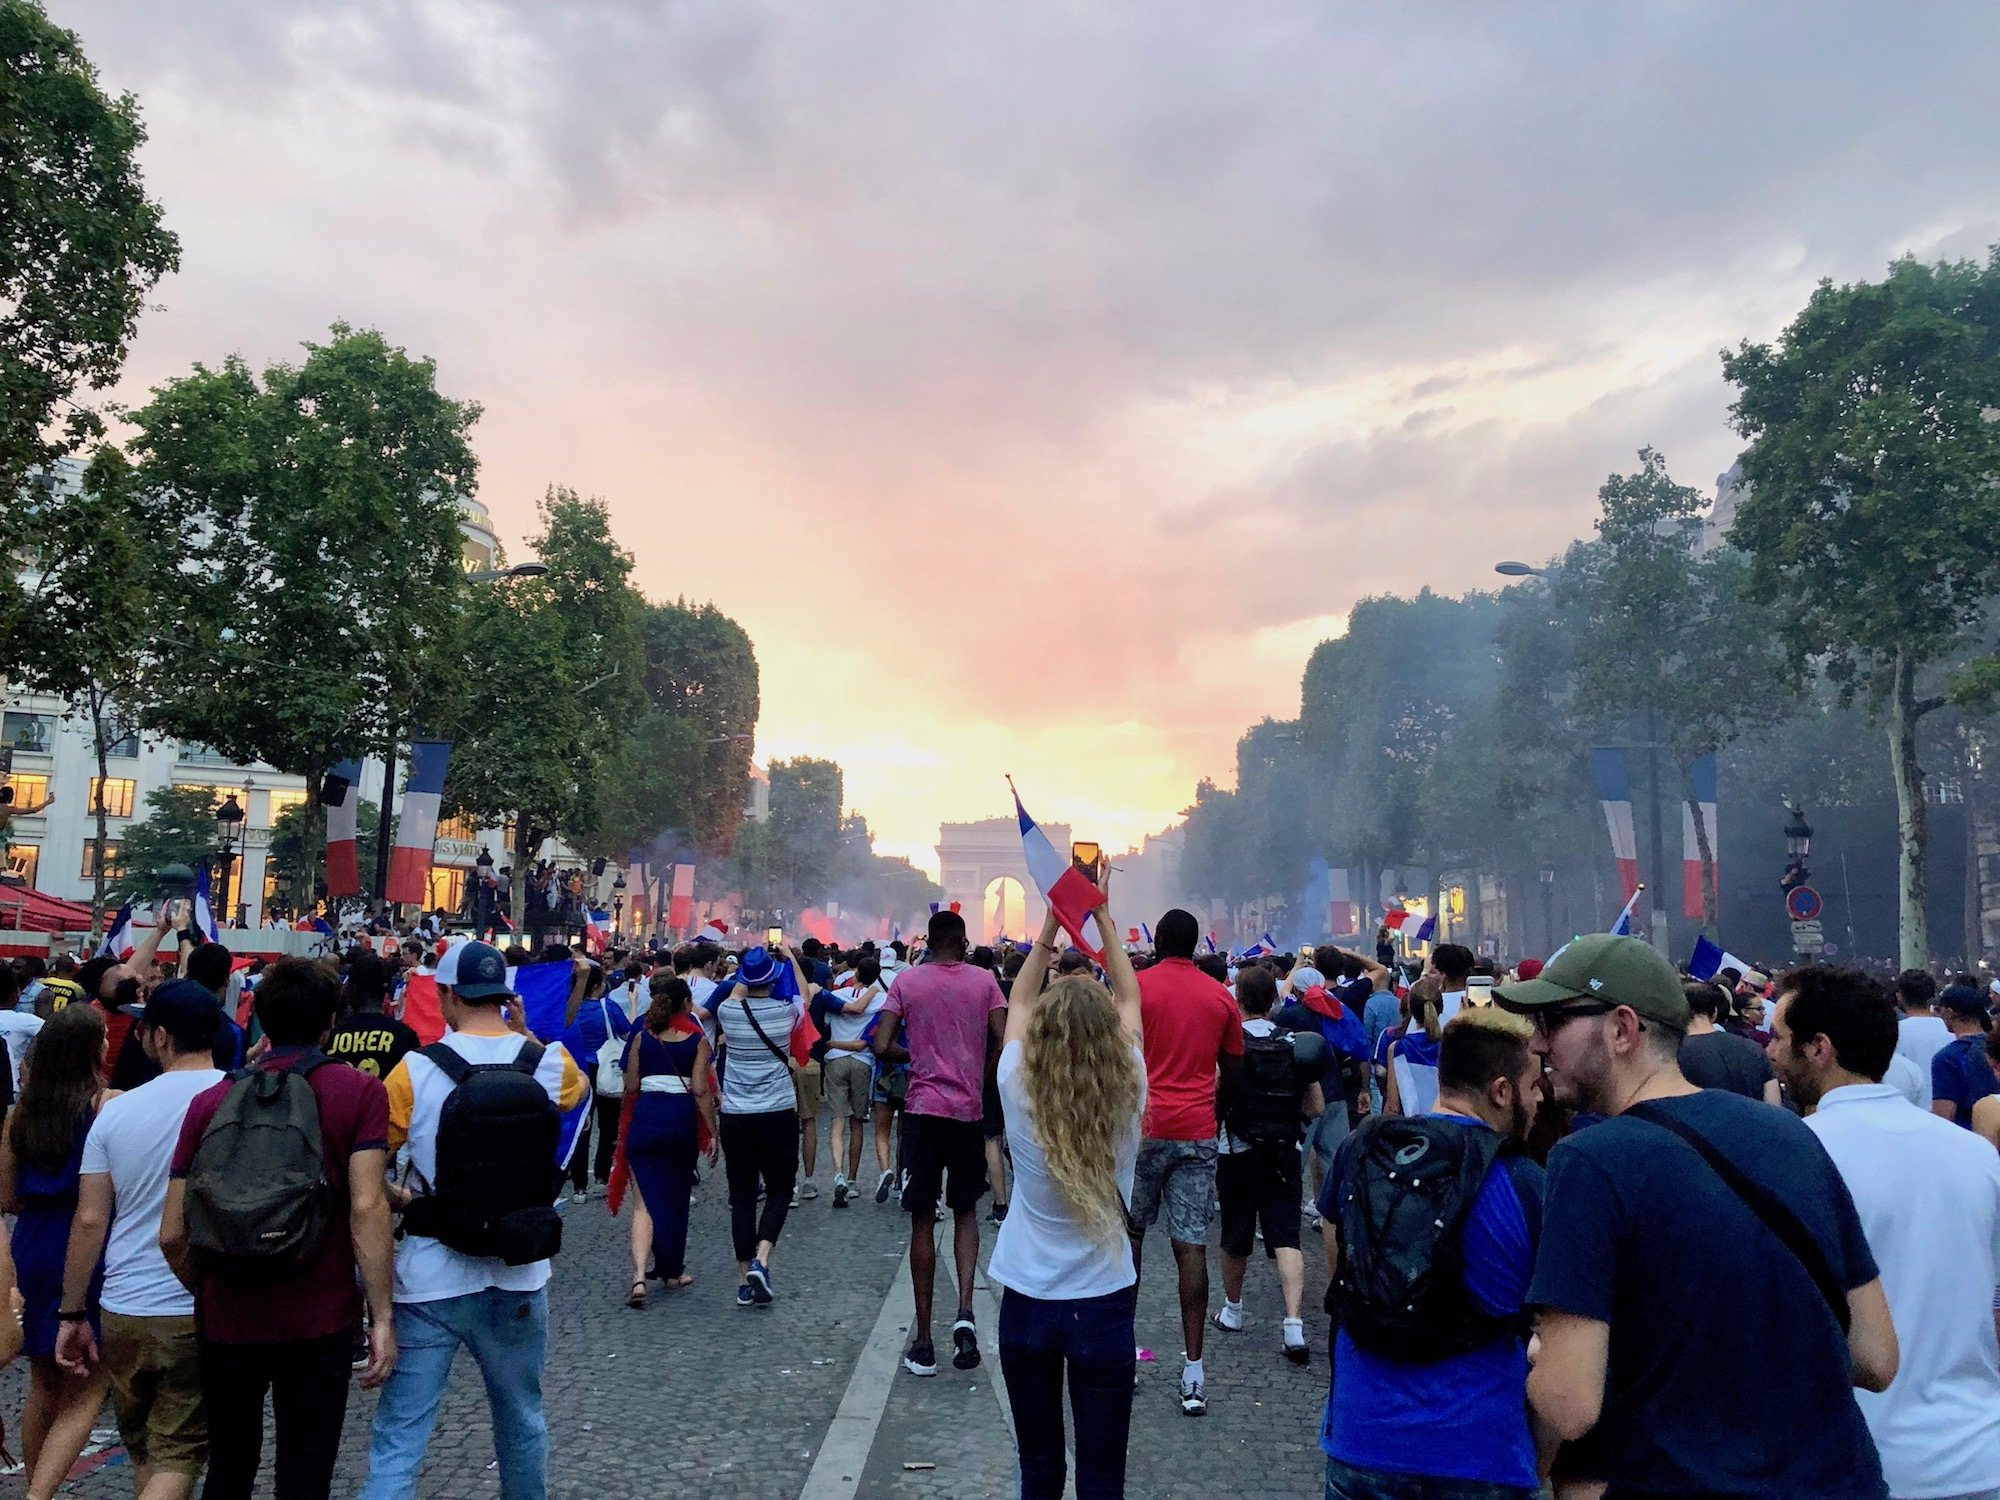 World Champions 2018: France Wins The World Cup Again and the French celebrate on the Champs Elysées waving flags at sunset with the Arc de Triomphe in the background.